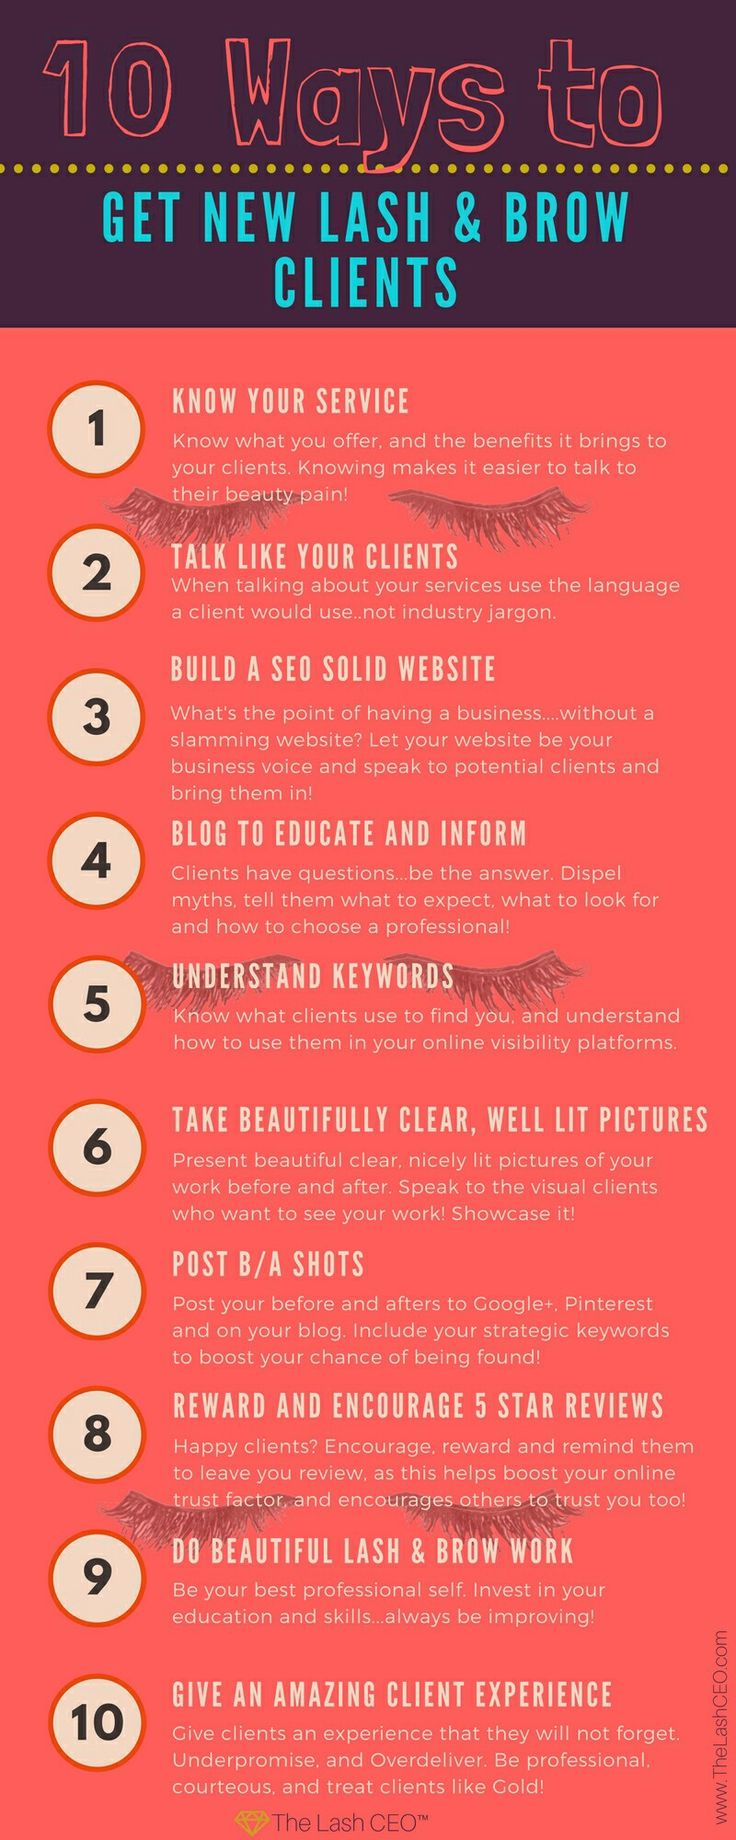 10 Ways to Get Lash & Brow Clients www.TheLashCEO.com